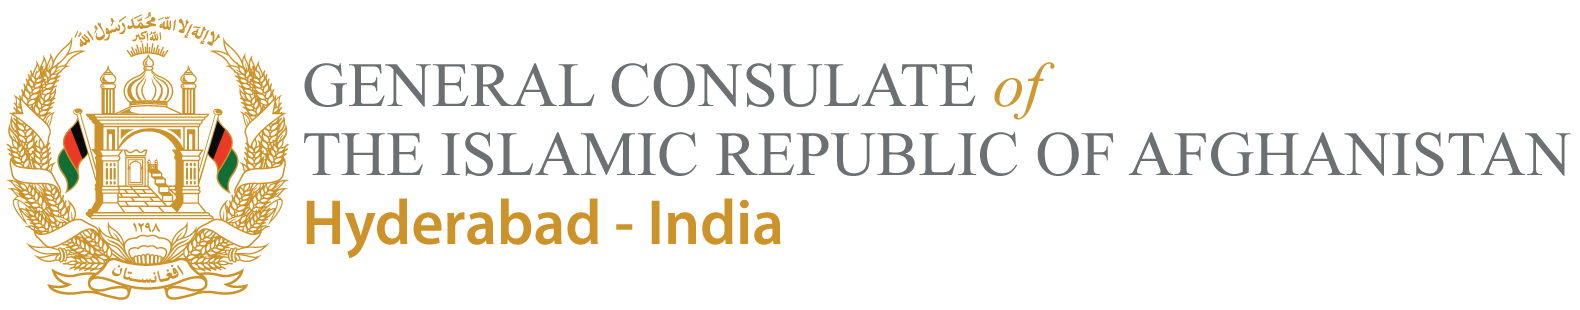 Consulate General of the Islamic Republic of Afghanistan | Hyderabad - India